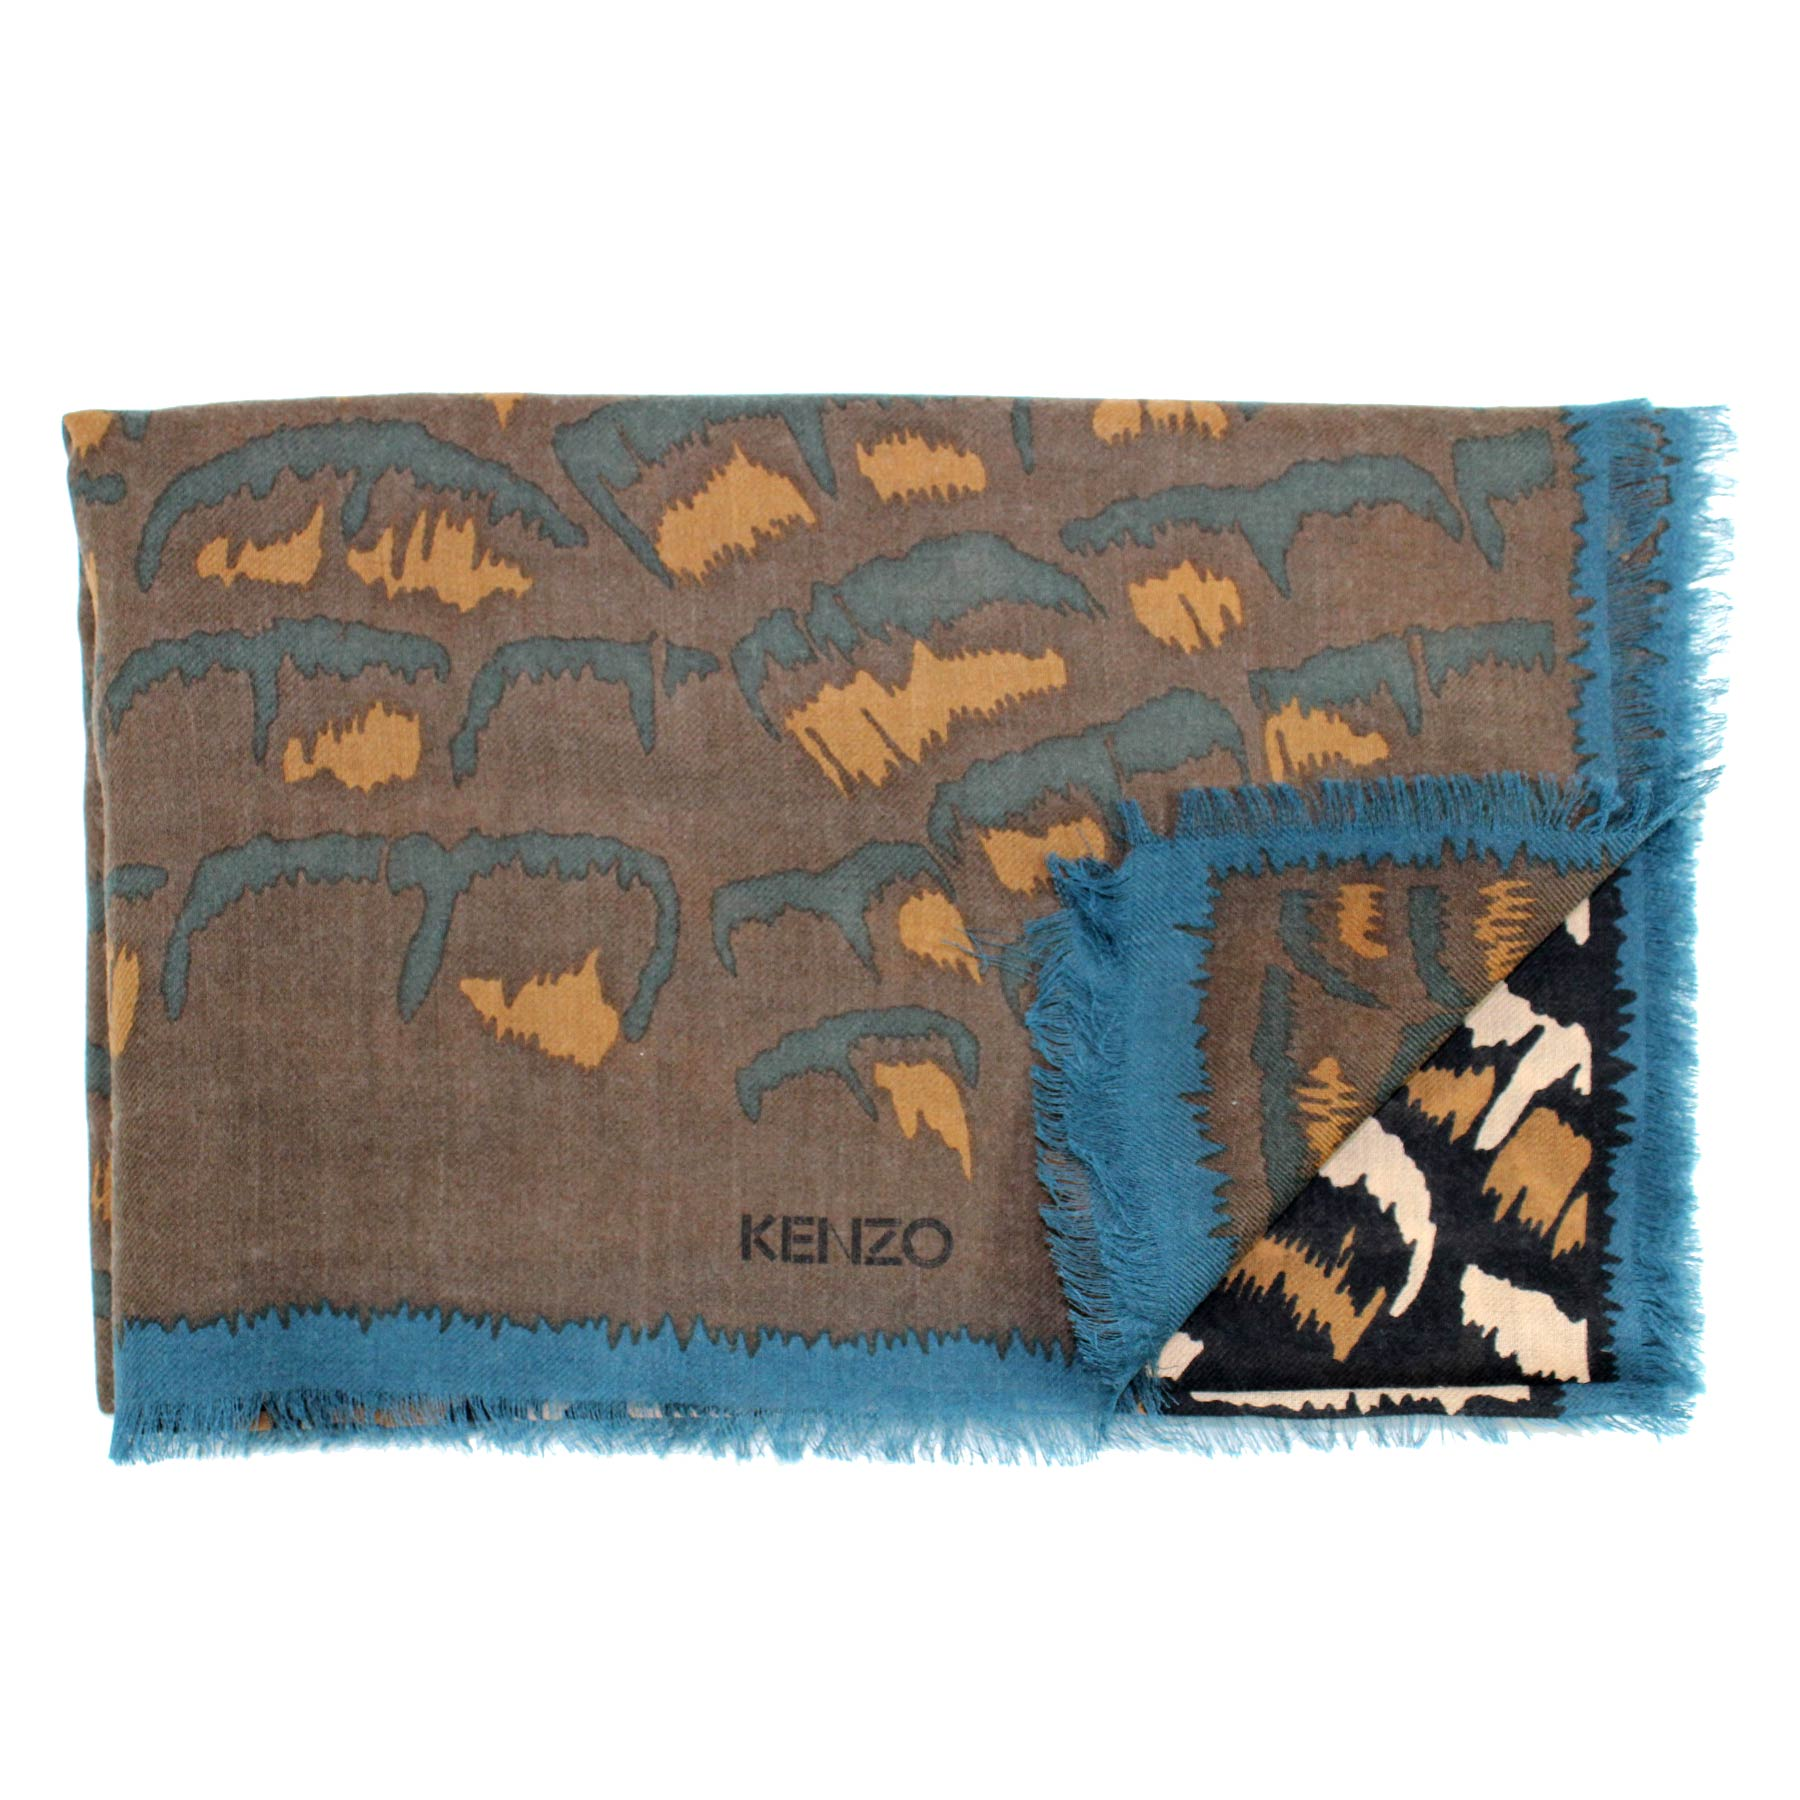 Kenzo Scarf Brown Metal Blue Design - Wool Women Shawl